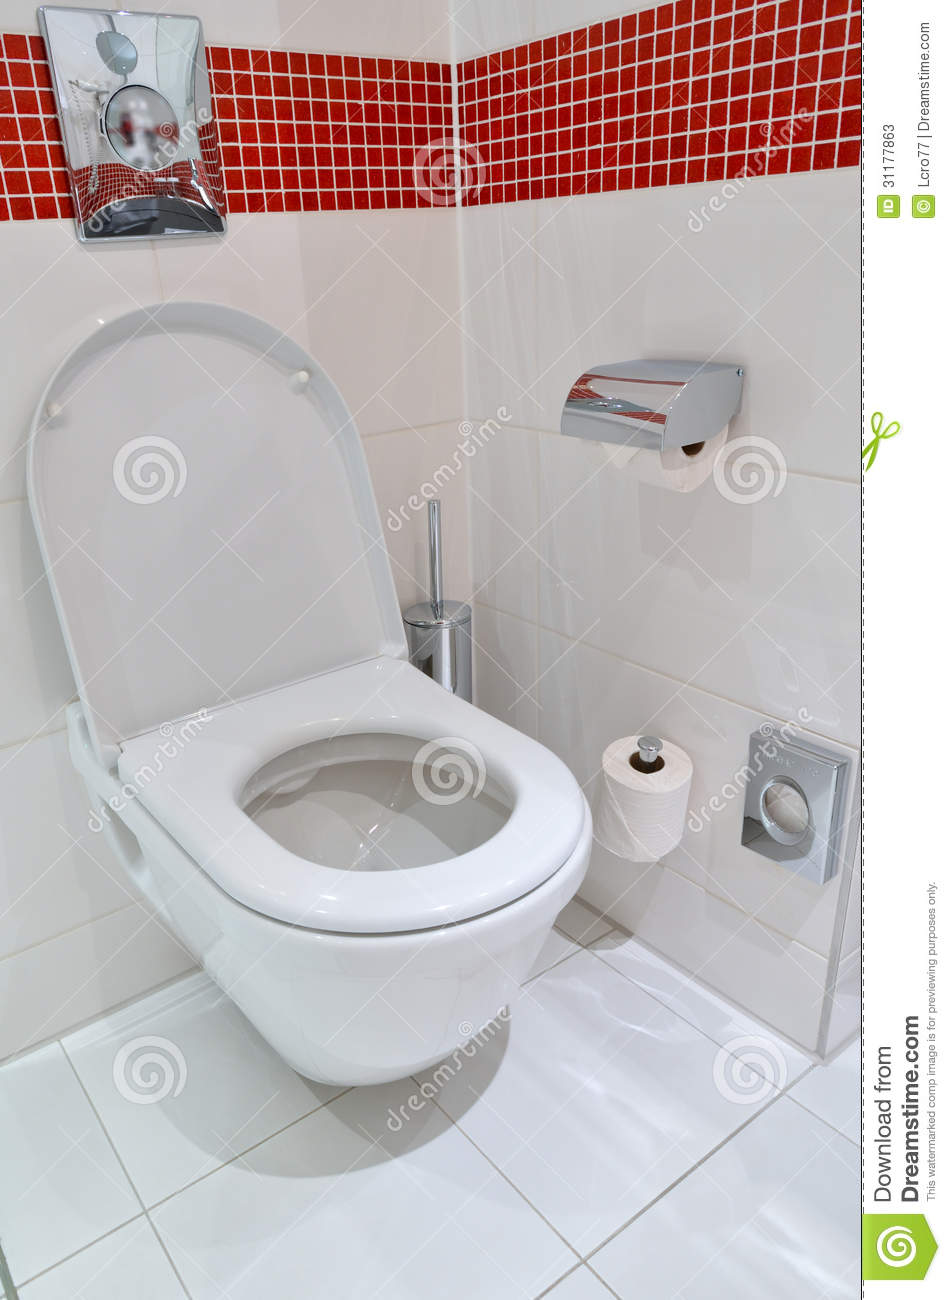 Toilet On The White Floor Tiles Stock Image - Image of porcelain ...